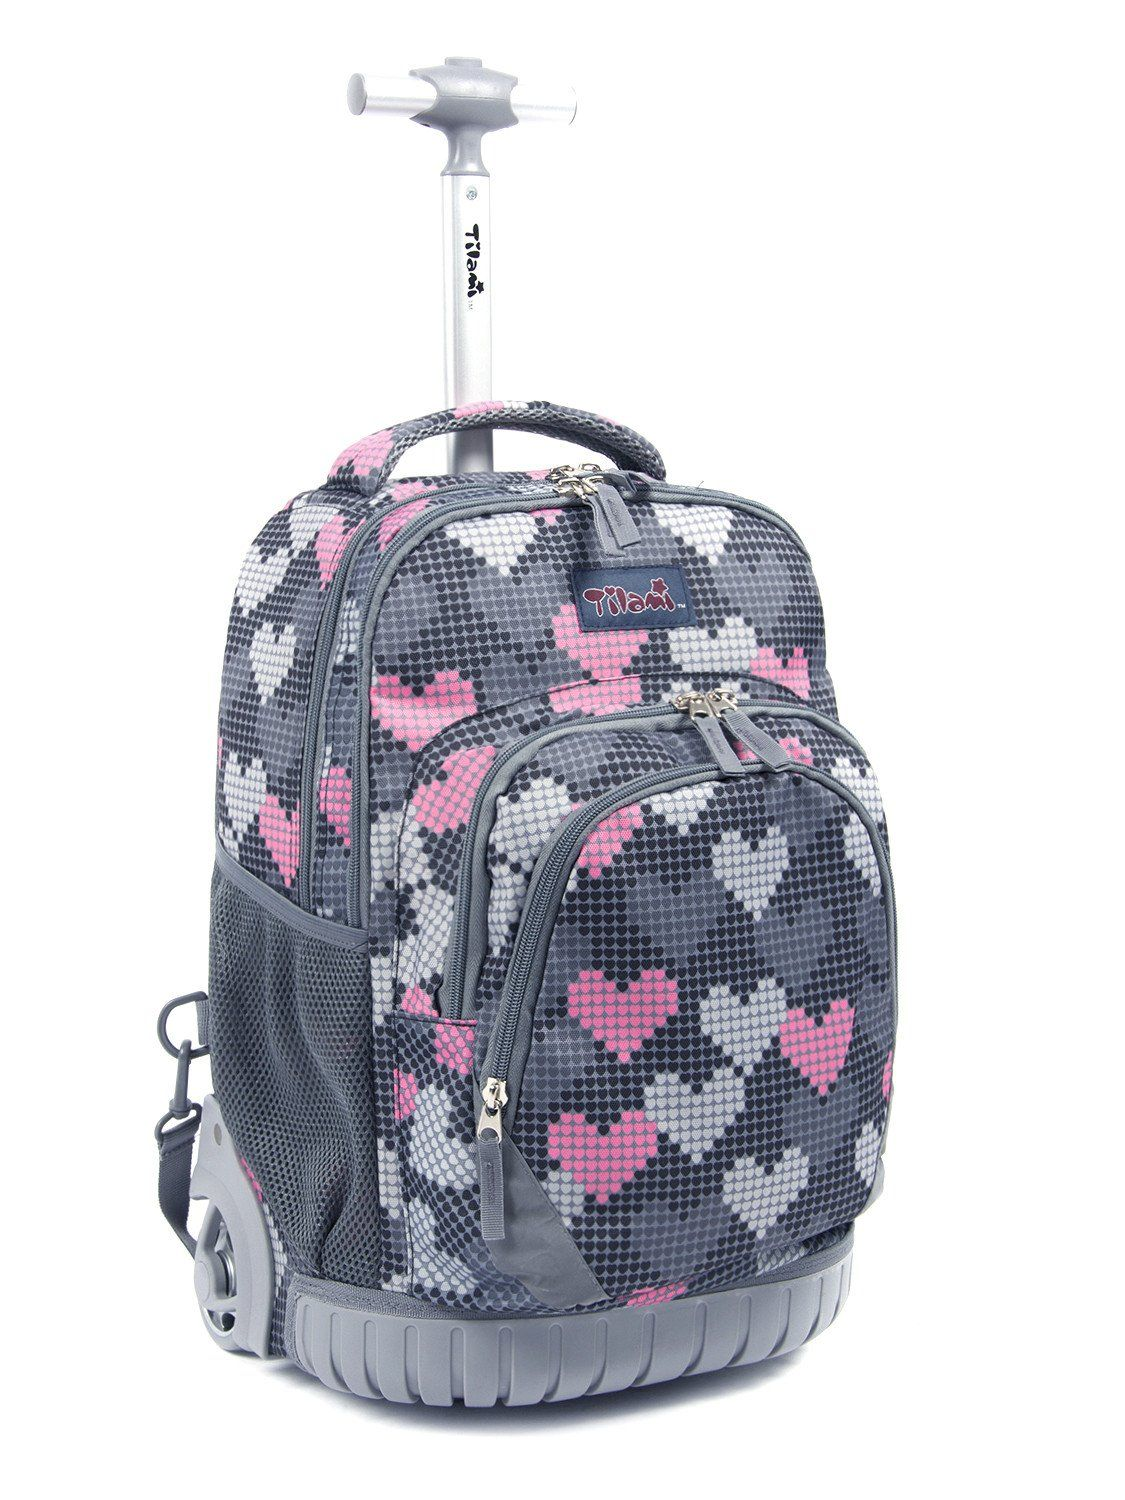 93f622d729 Tilami Rolling Backpack Armor Luggage School Travel Book Laptop 18 Inch  Multifunction Wheeled Backpack Falling Love